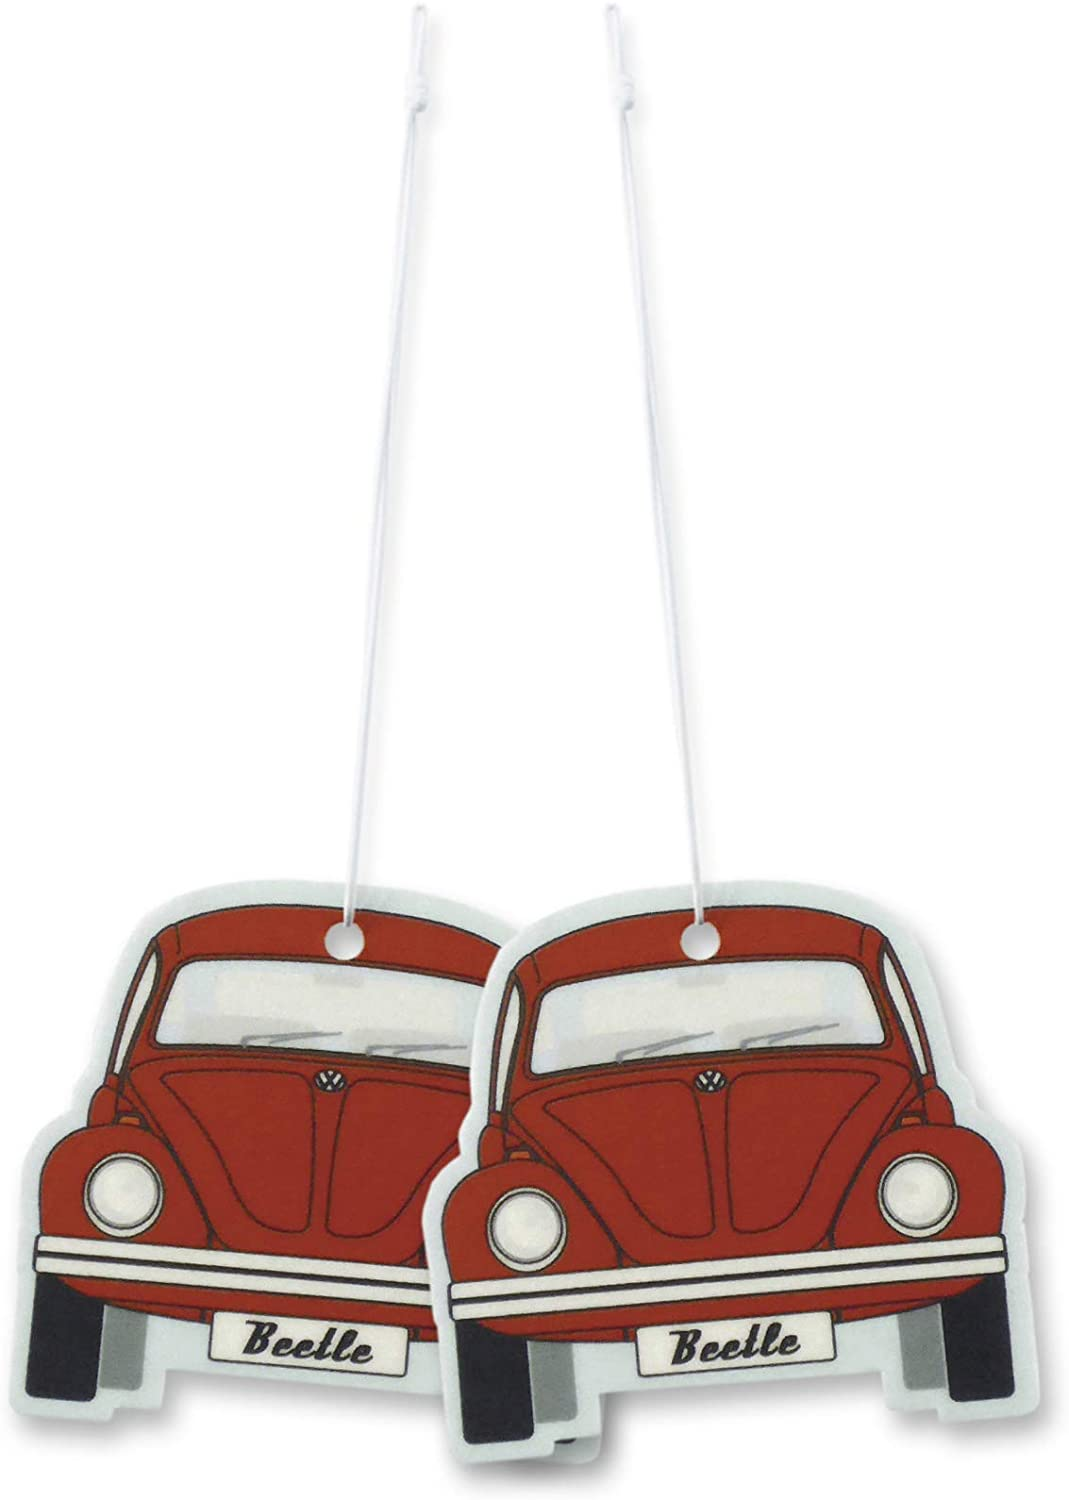 BRISA VW Collection - Volkswagen Scented Car Air Freshener Fragrance Deodorizer for Car/Auto or Home with Volkswagen Beetle/Bug Front Design (Melon/Red/2-pc Set)